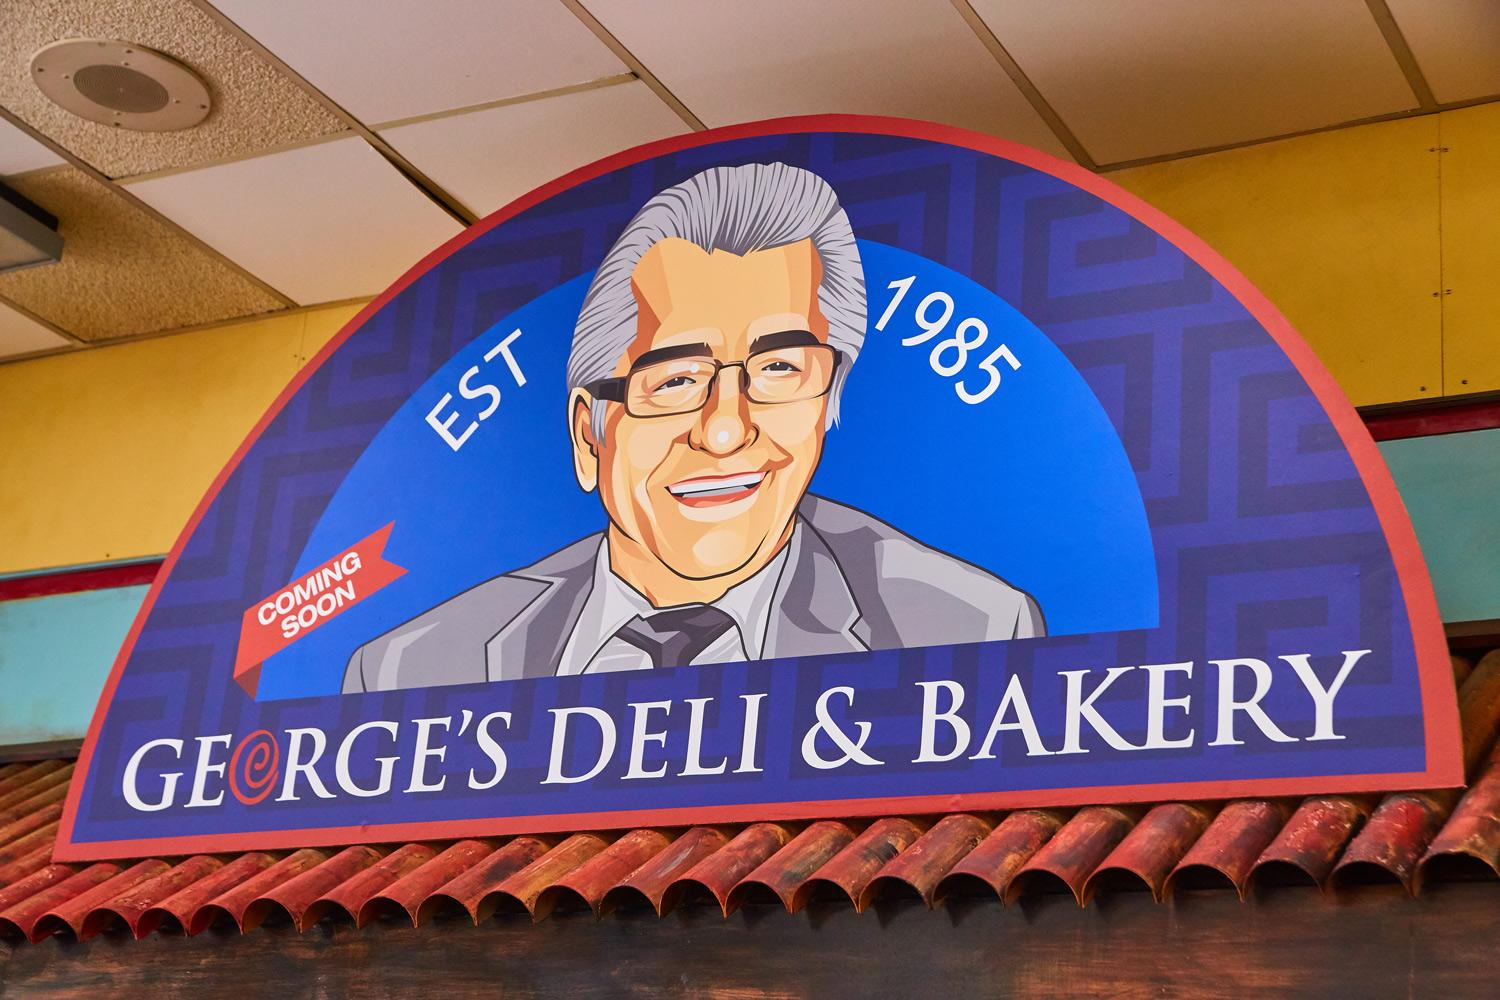 George's Deli and Bakery